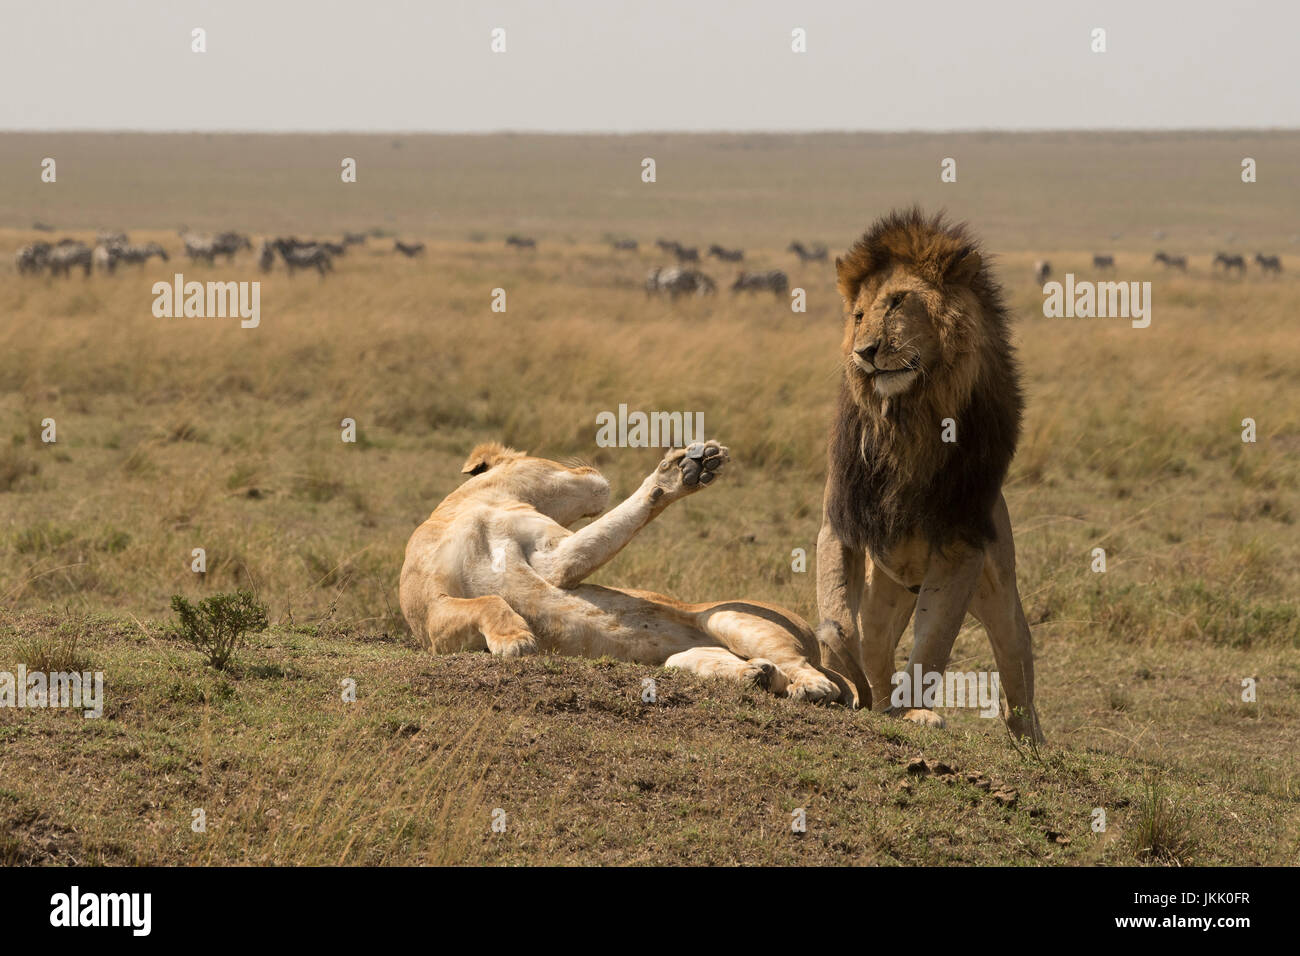 Lioness striking out at male after mating in the Masai Mara in Kenya - Stock Image